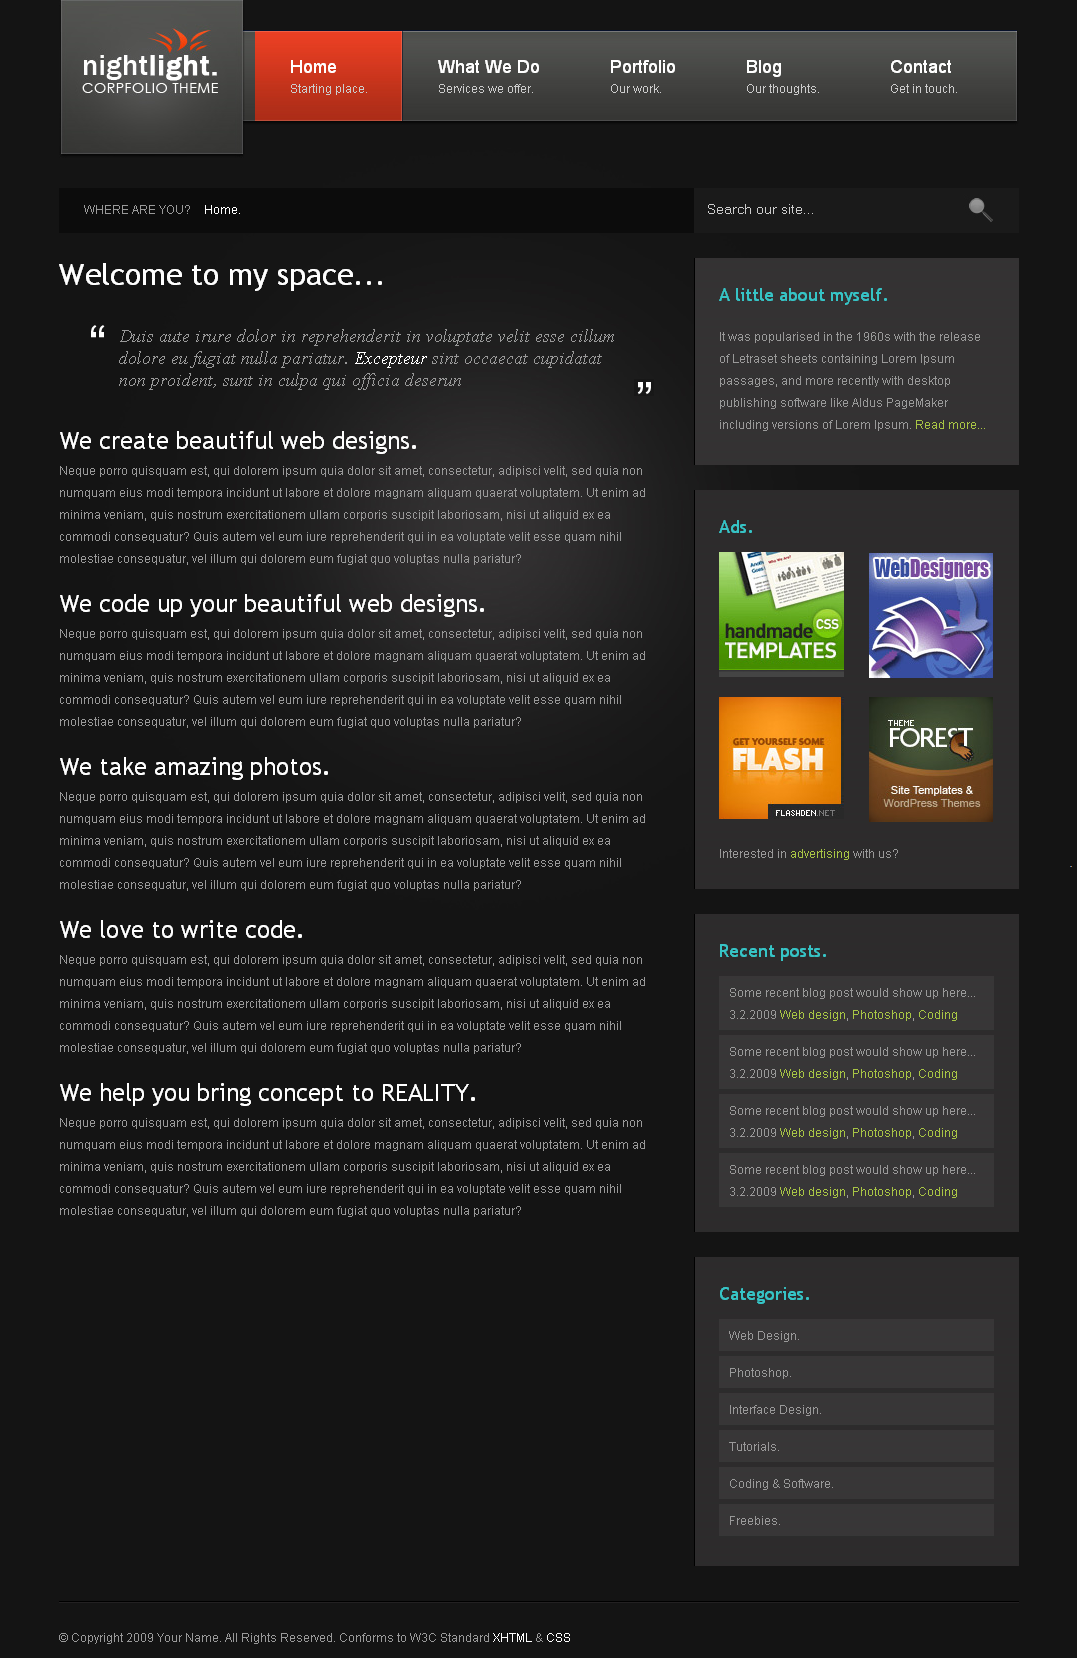 nightLight - Home Page